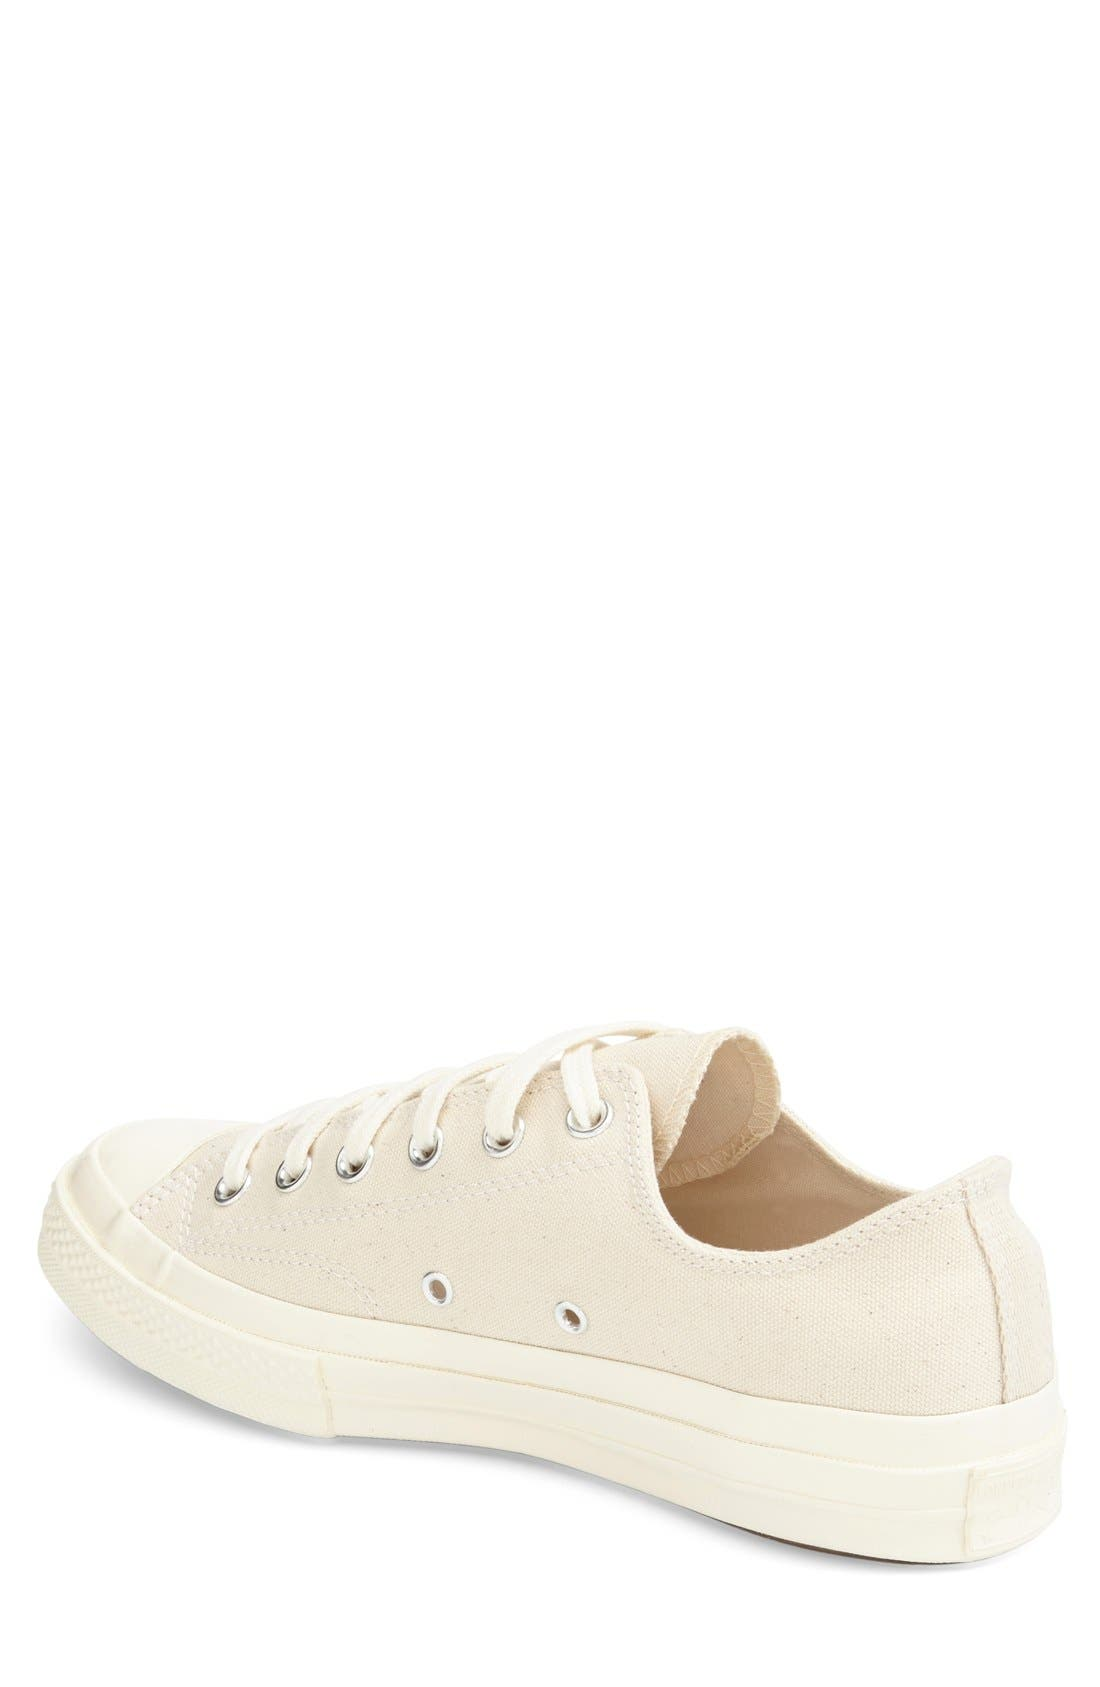 Chuck Taylor<sup>®</sup> All Star<sup>®</sup> '70 Low Sneaker,                             Alternate thumbnail 13, color,